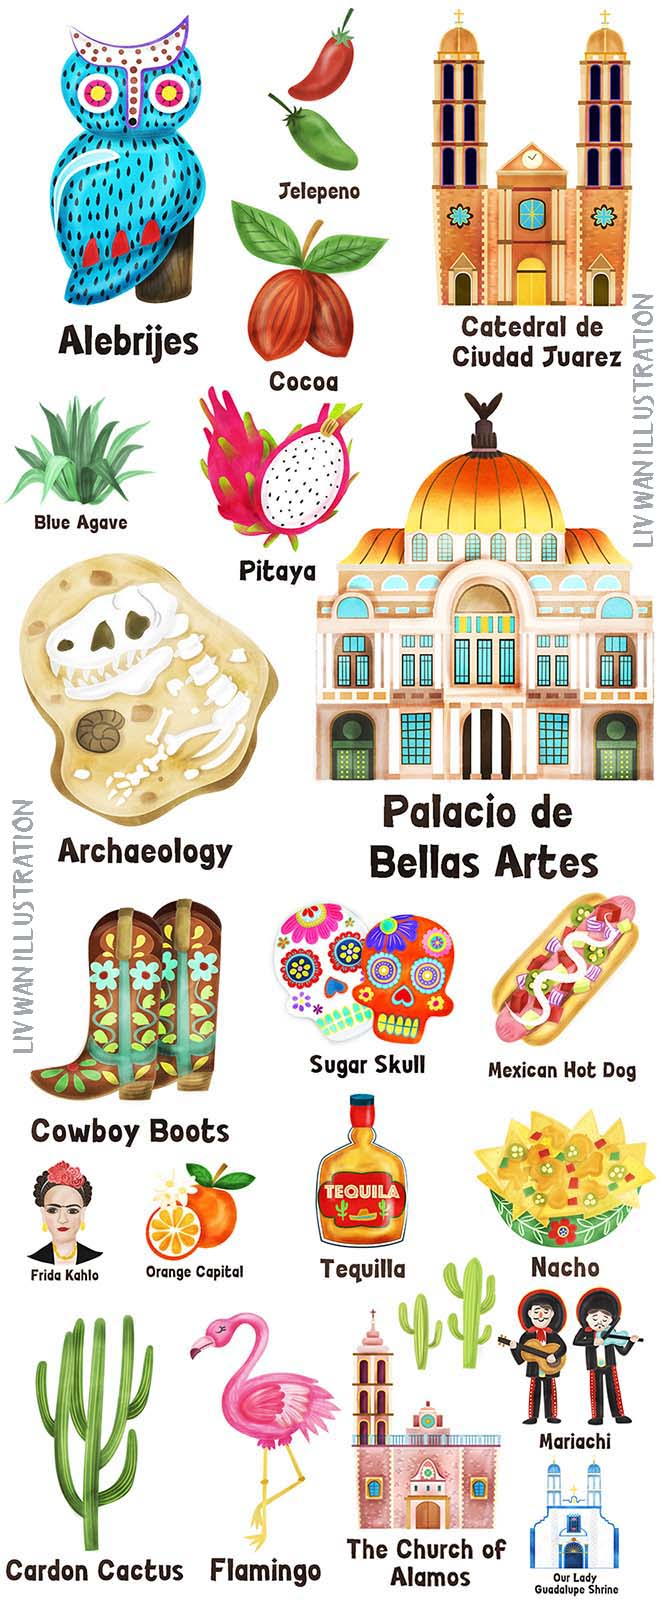 Mexico illustrations spot illustration cute illustration